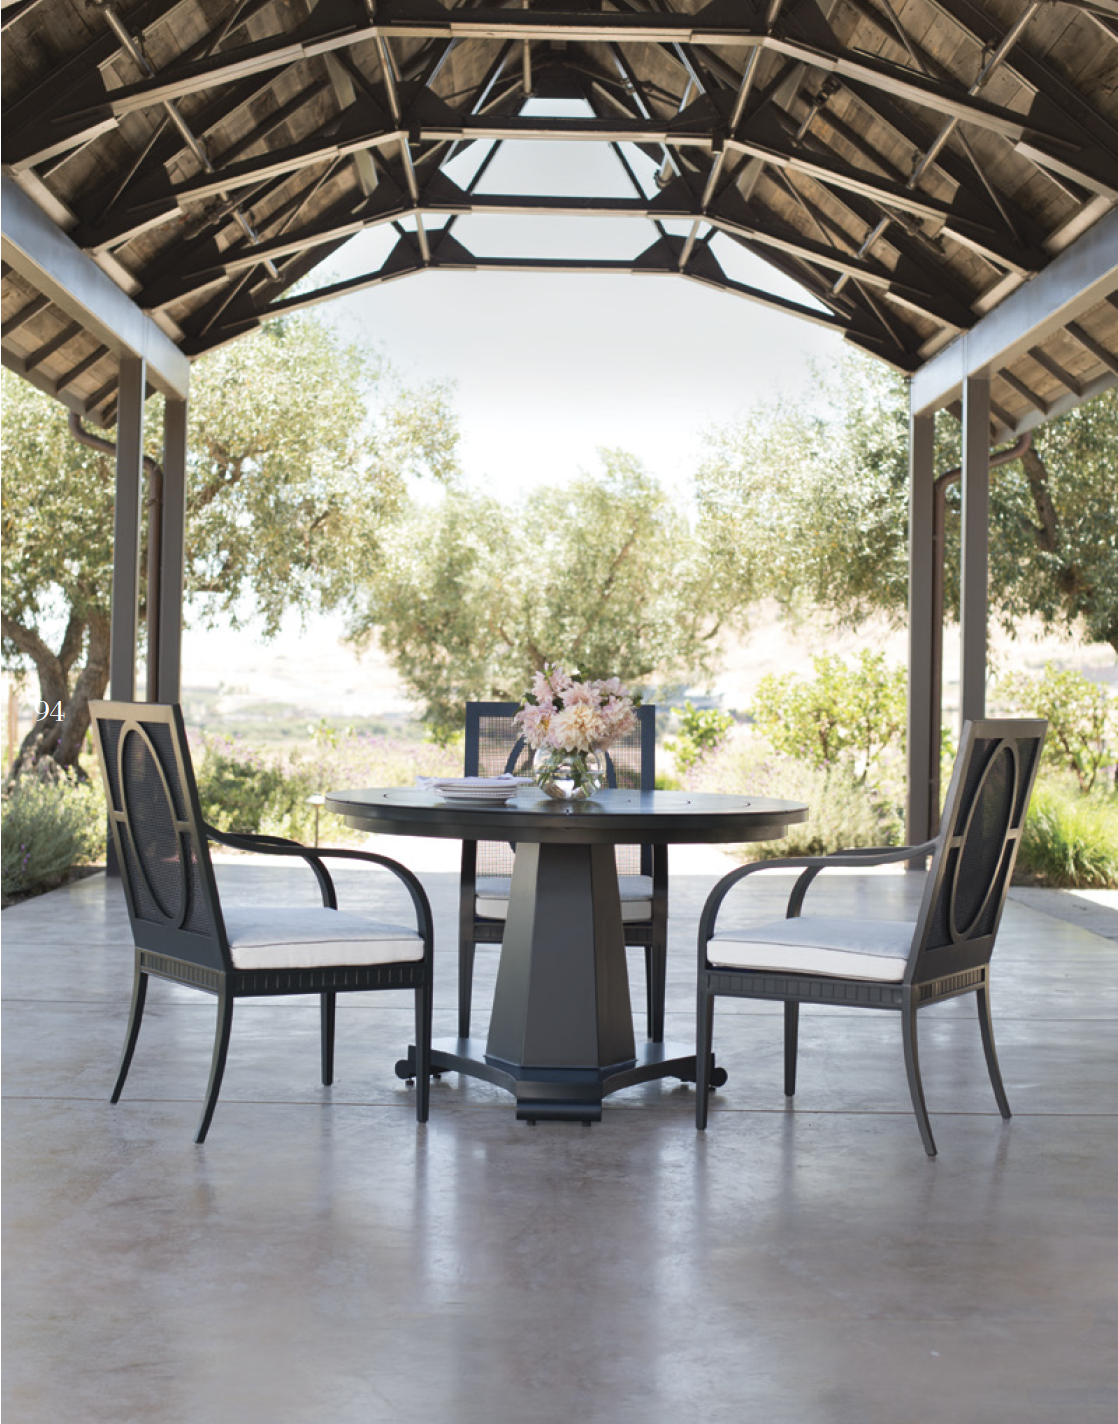 Stately and classic outdoor furniture | JANUS et Cie ... on Fine Living Patio Set id=99159